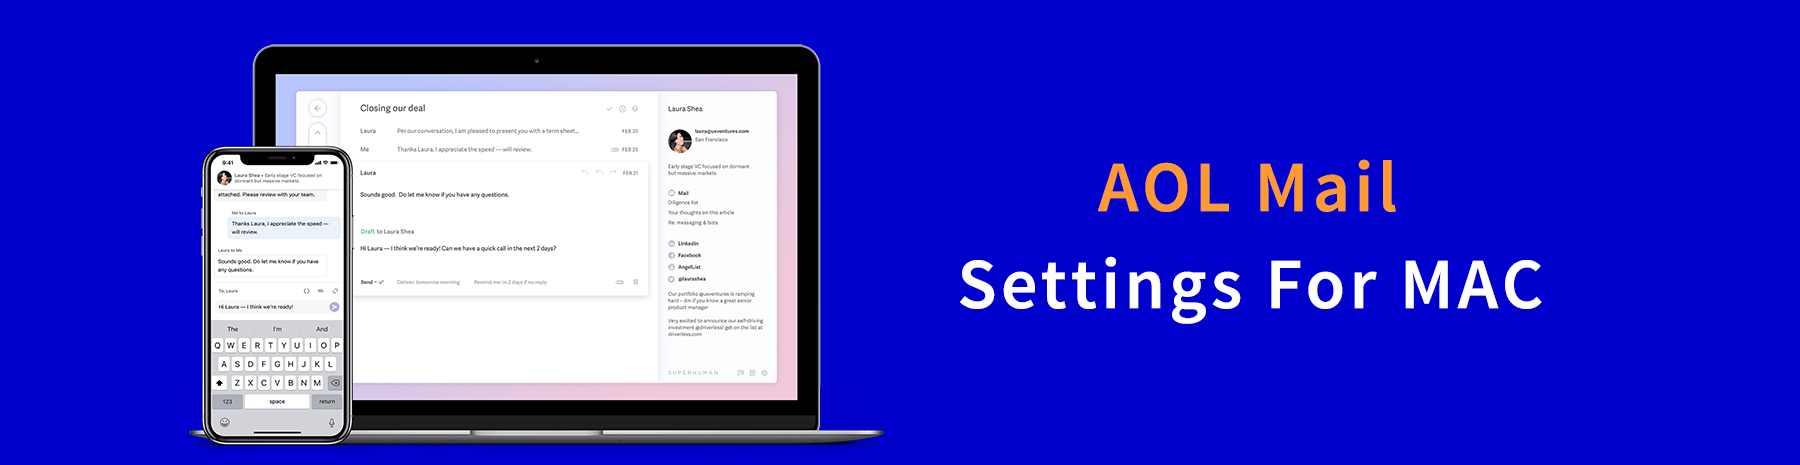 Aol-Mail-Settings-For-MAC